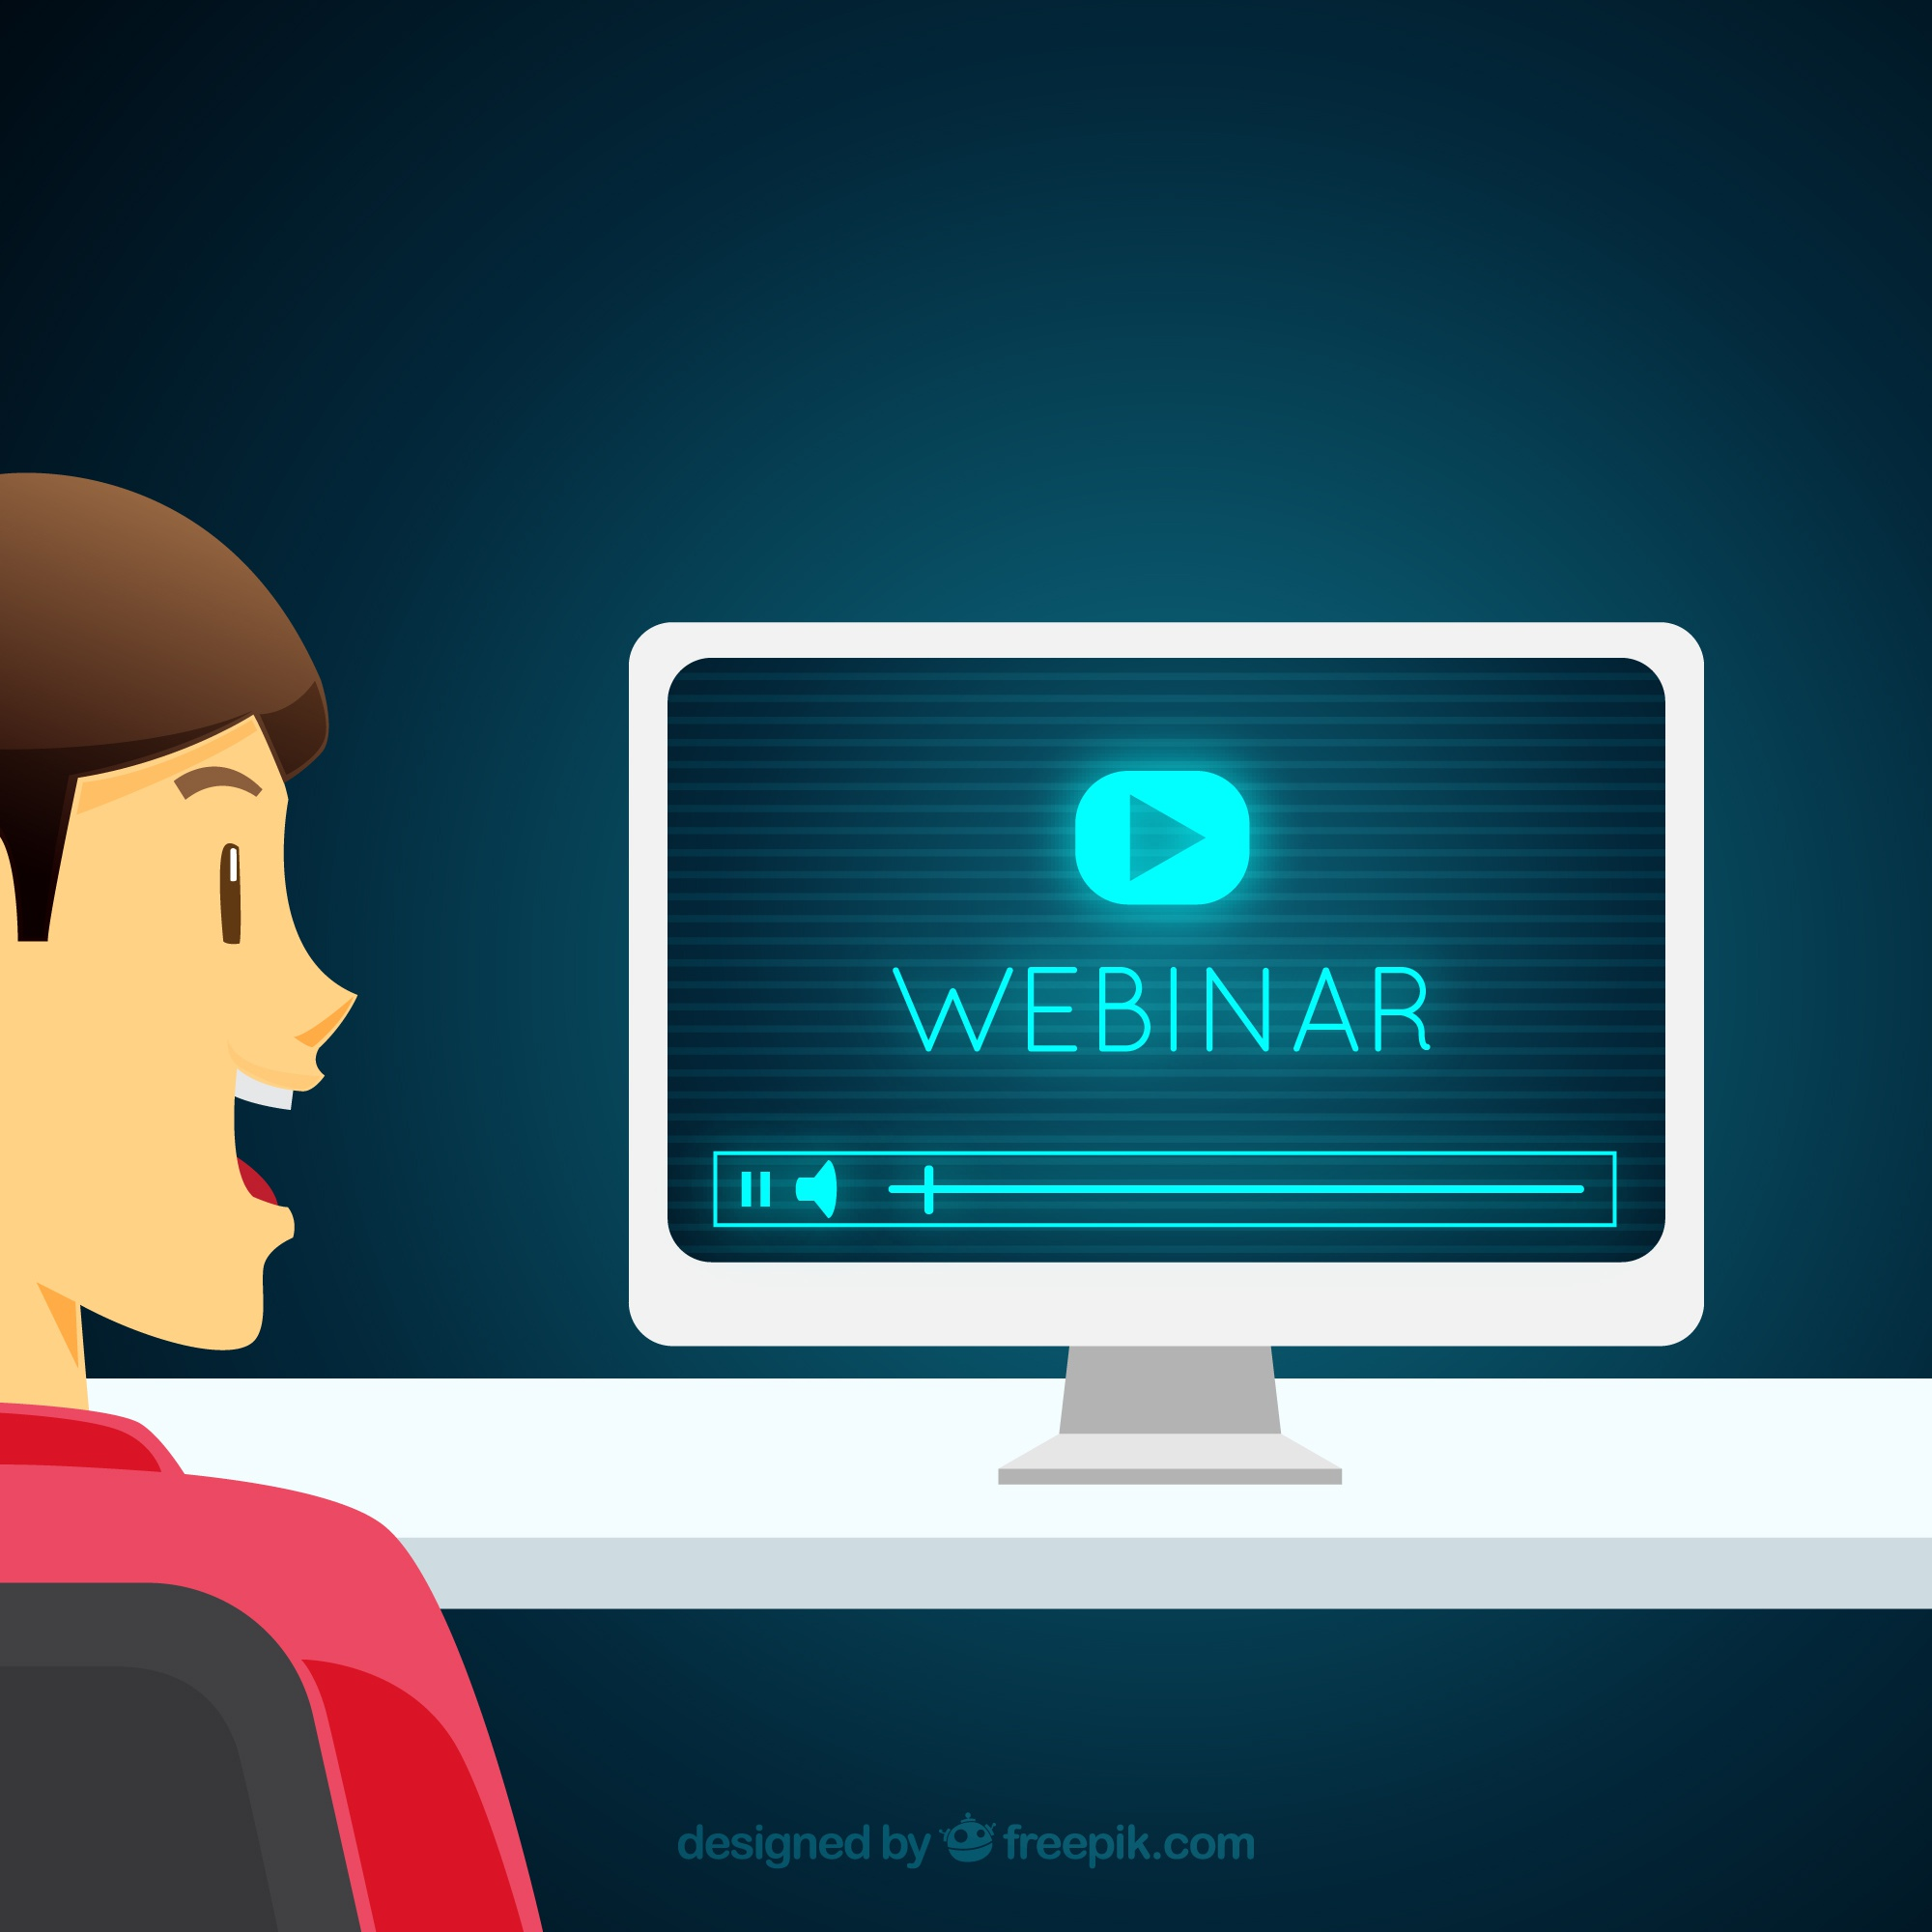 Webinar concept with man looking at screen